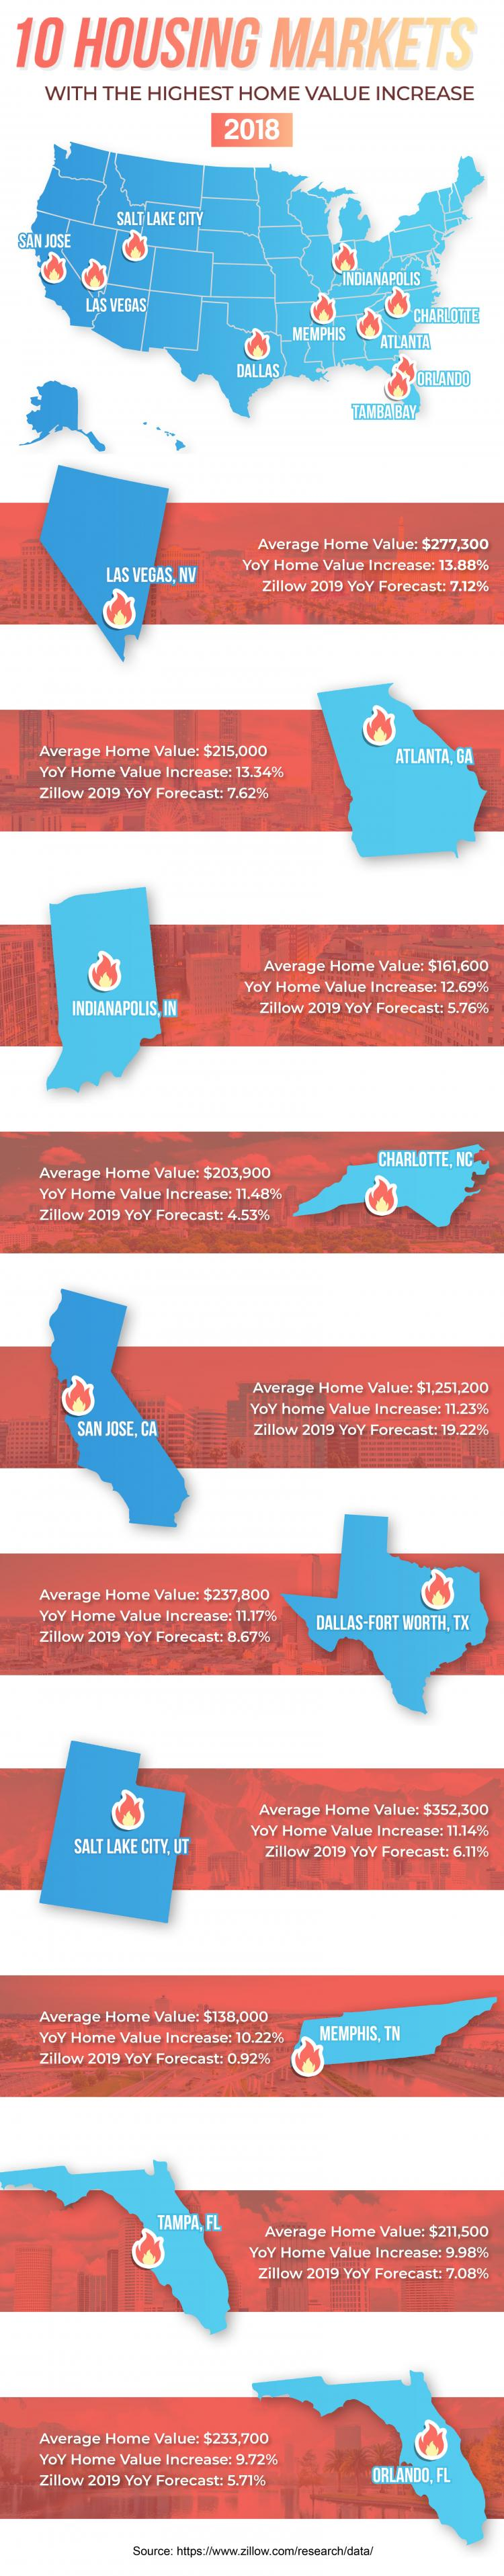 Infographic: The 10 Fastest-Growing Housing Markets in 2018 and Bold 2019 Predictions